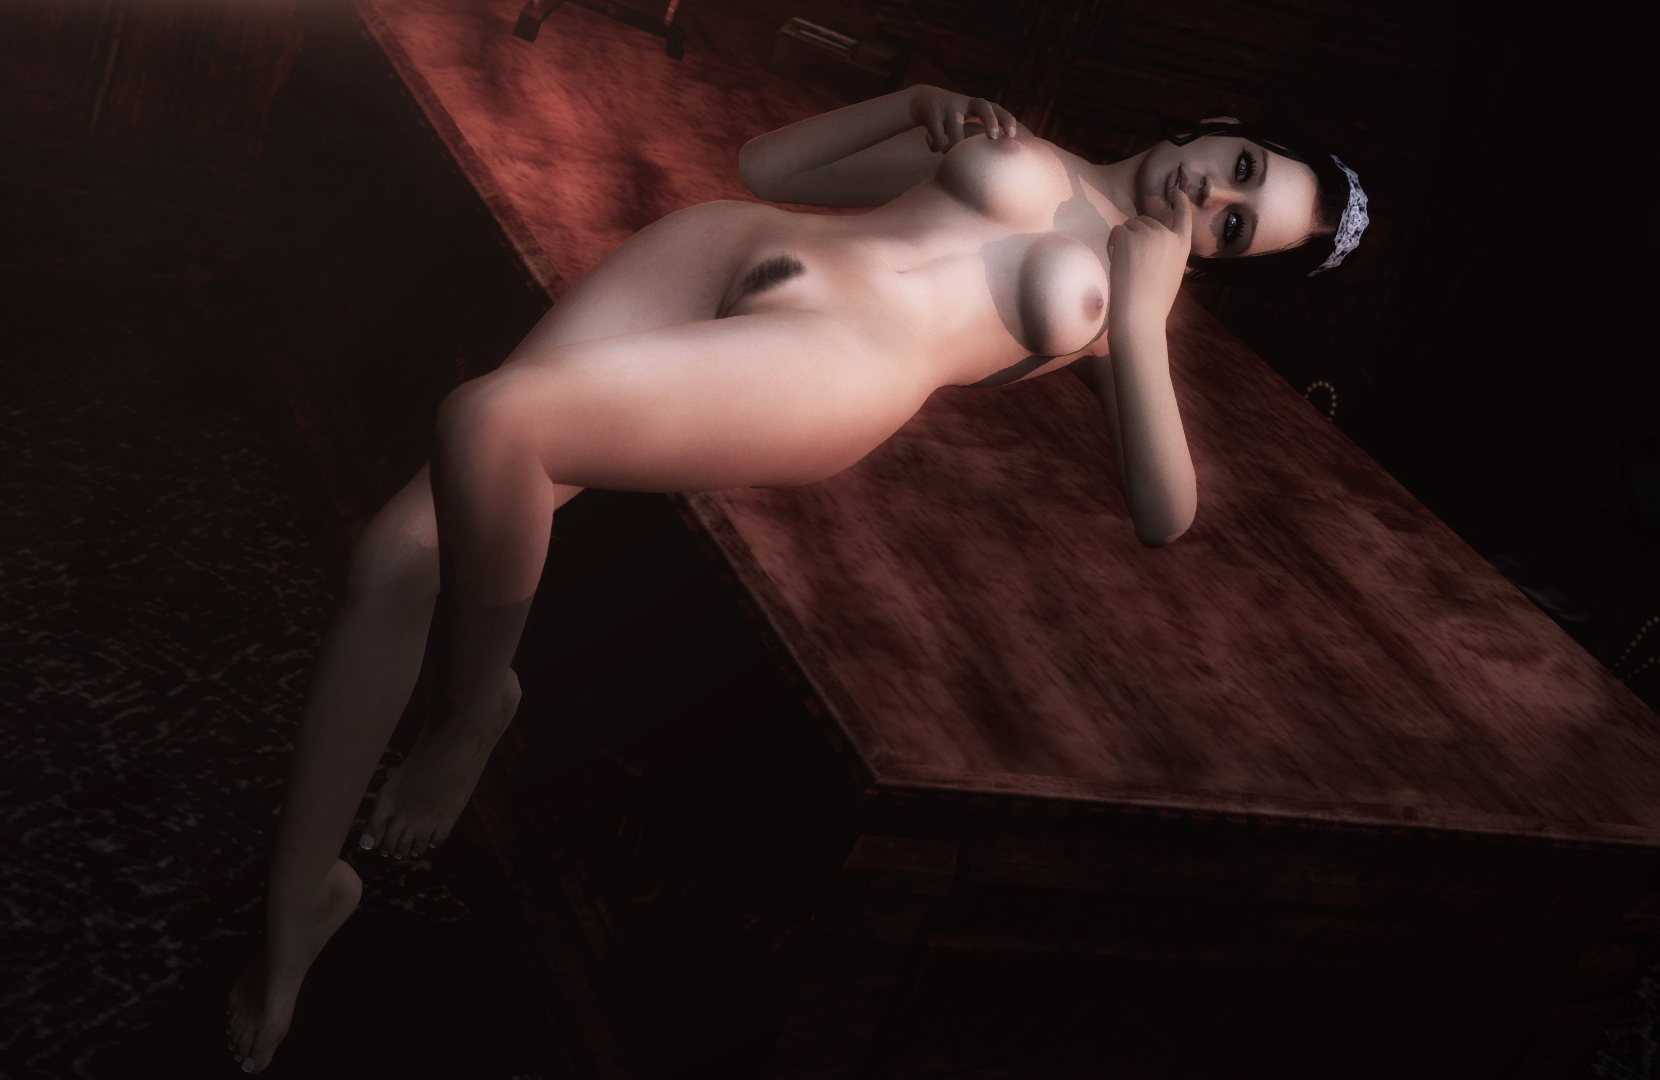 Lula 3d sex scene naked photo